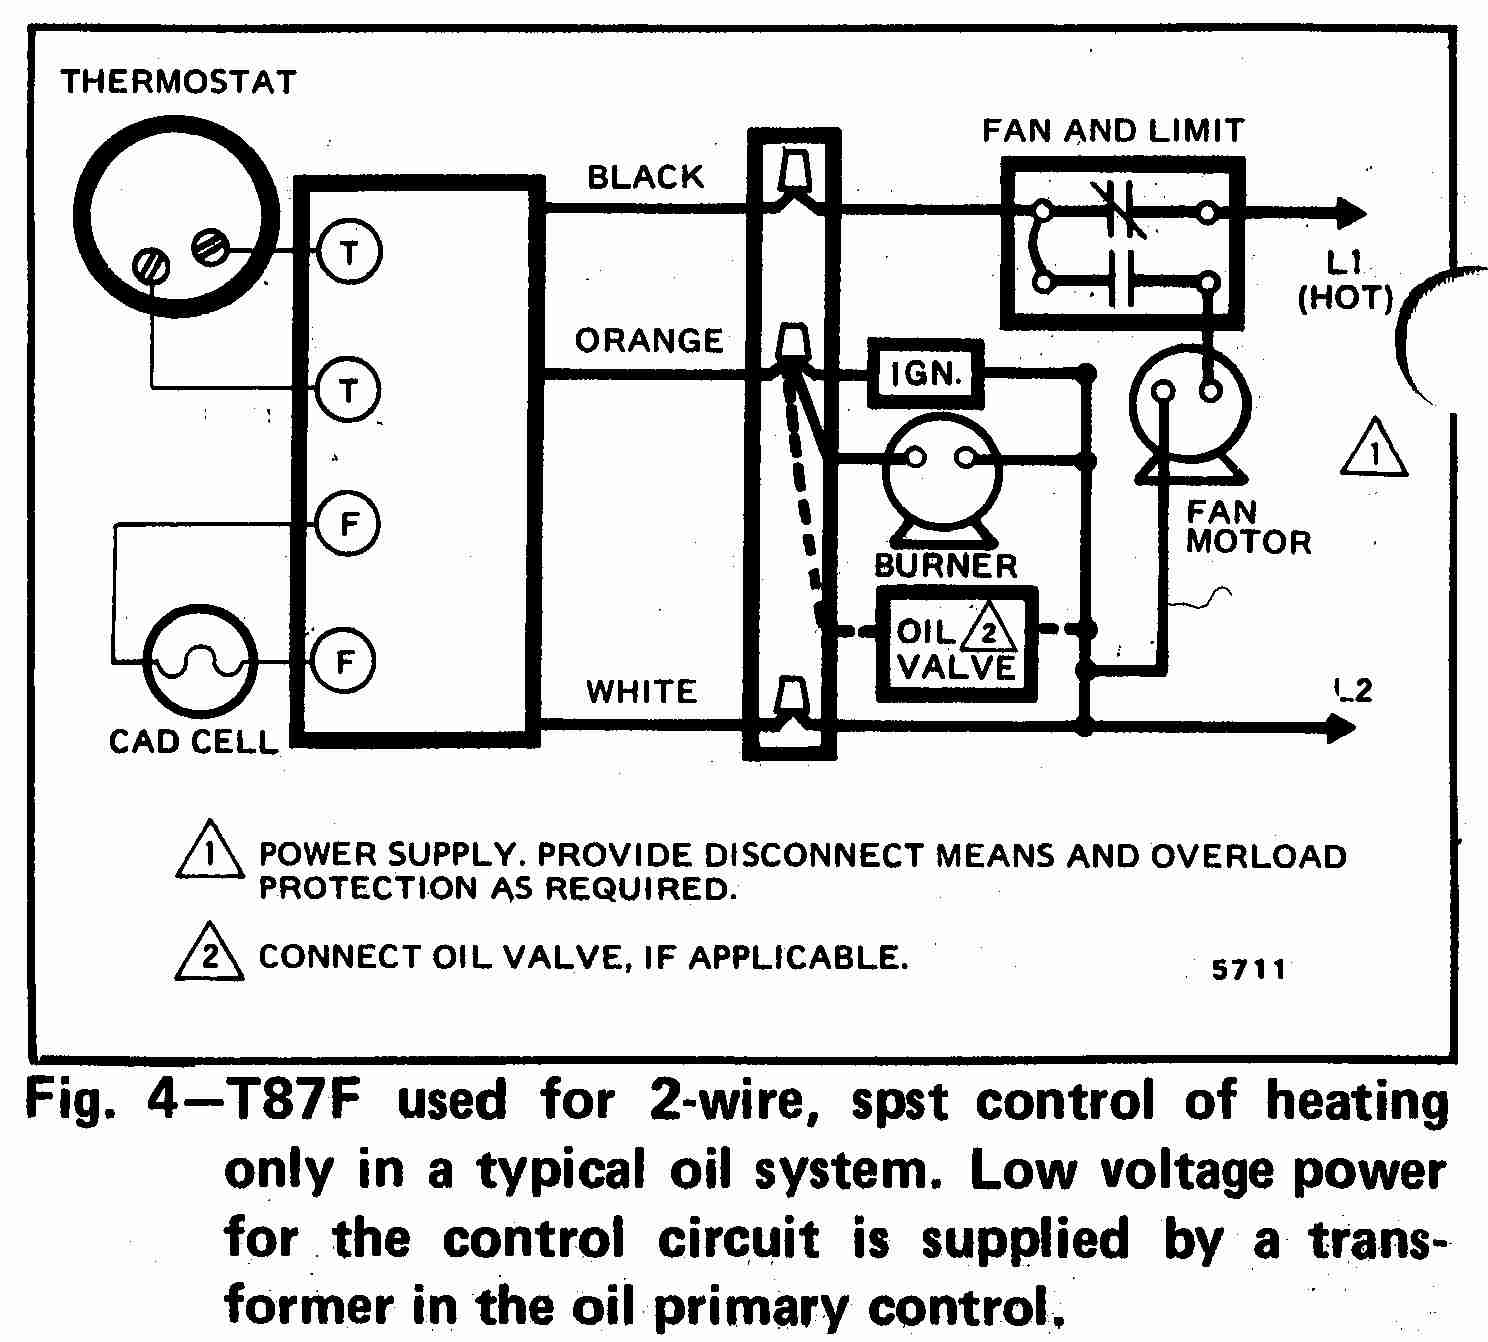 TT_T87F_0002_2W_DJF room thermostat wiring diagrams for hvac systems furnace wiring diagrams at bayanpartner.co